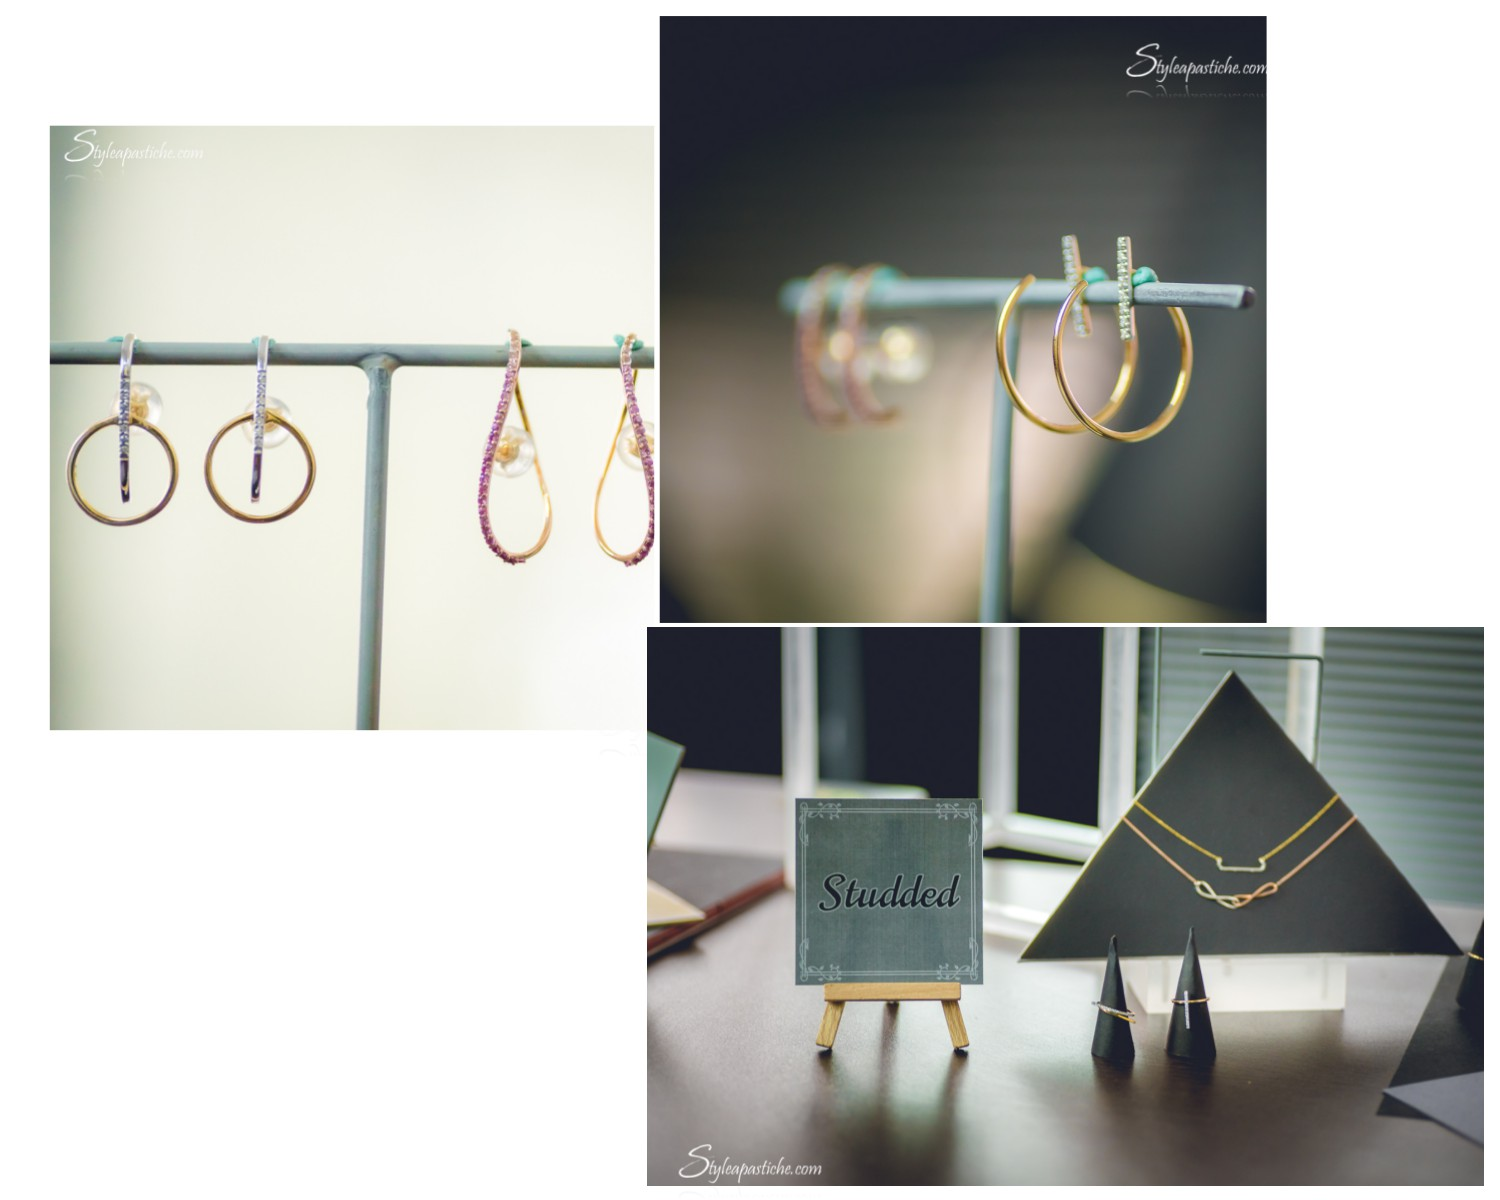 Indian fashion beauty lifestyle blog styleapastiche, Fine Line Jewellery collection by Tanishq, Simple minimal contemporary gold jewelery designs by Tanishq, Minimal Workwear jewellery collection